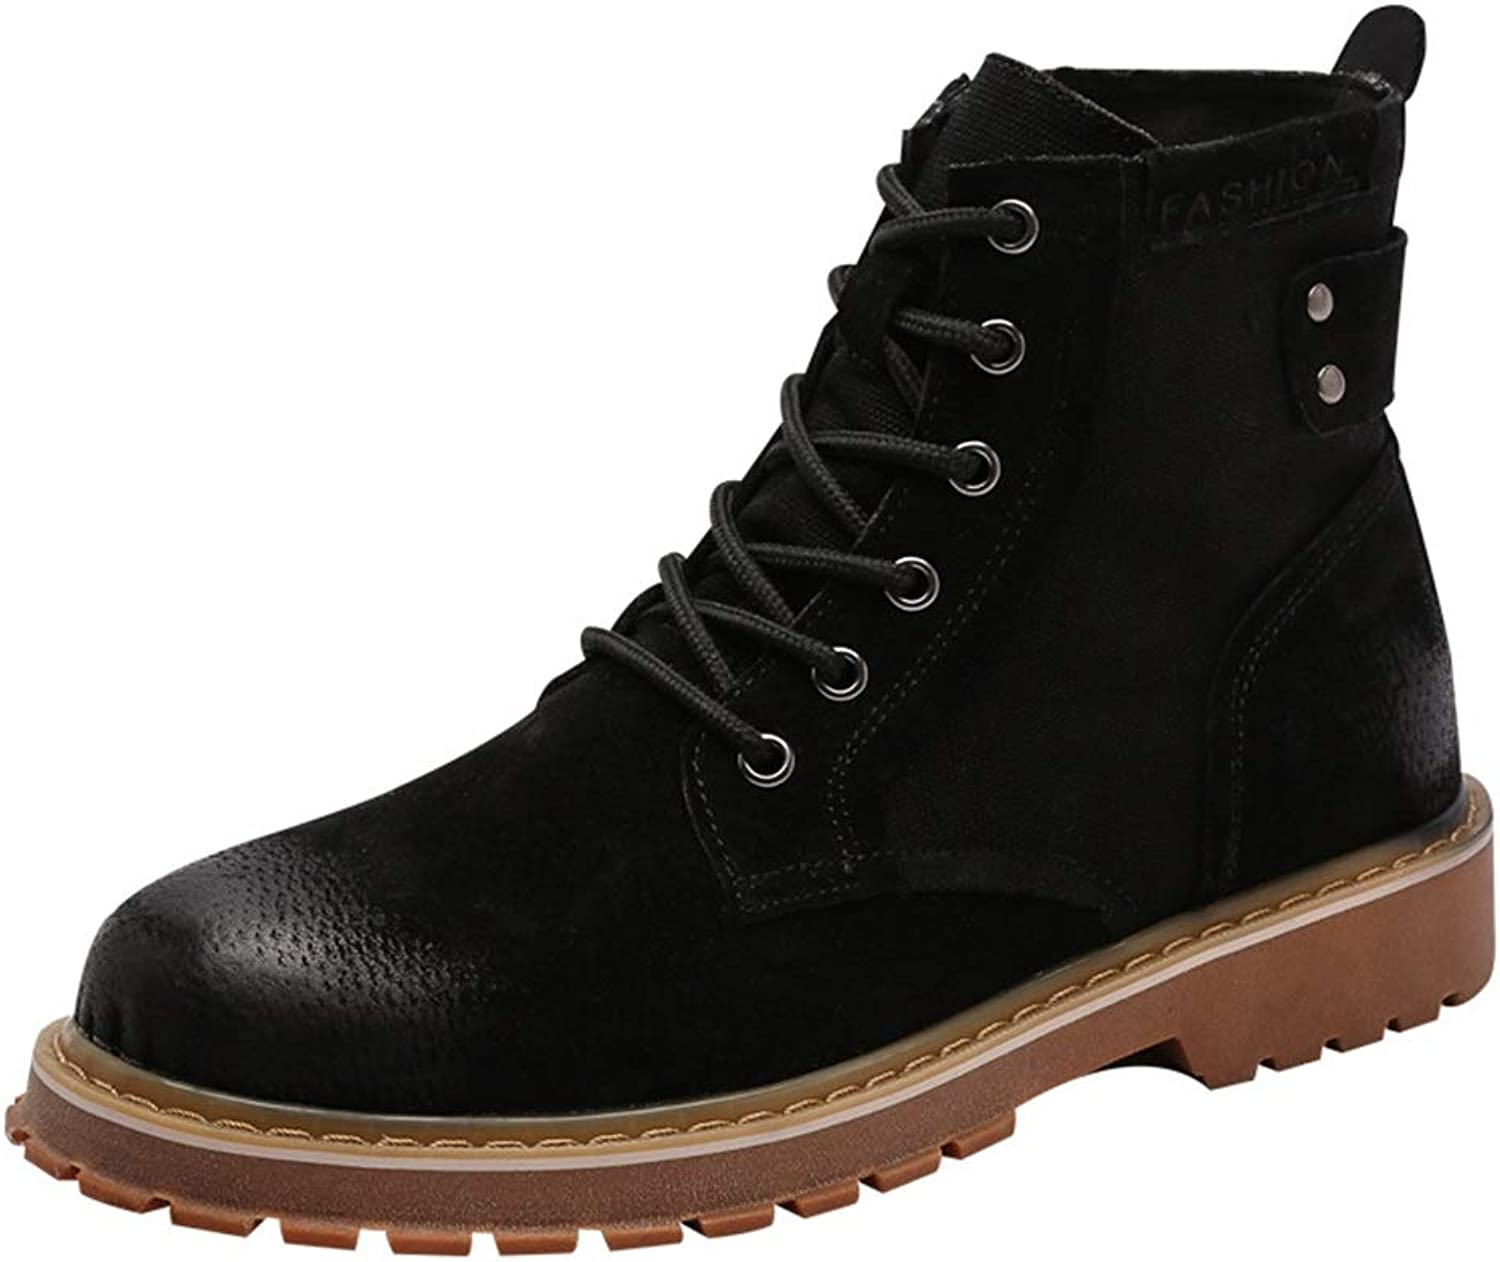 ZHRUI Mens Polished Leather Chukka Boots Soft Sole Non Slip Breathable Durable Boots (color   Black, Size   UK 5.5)